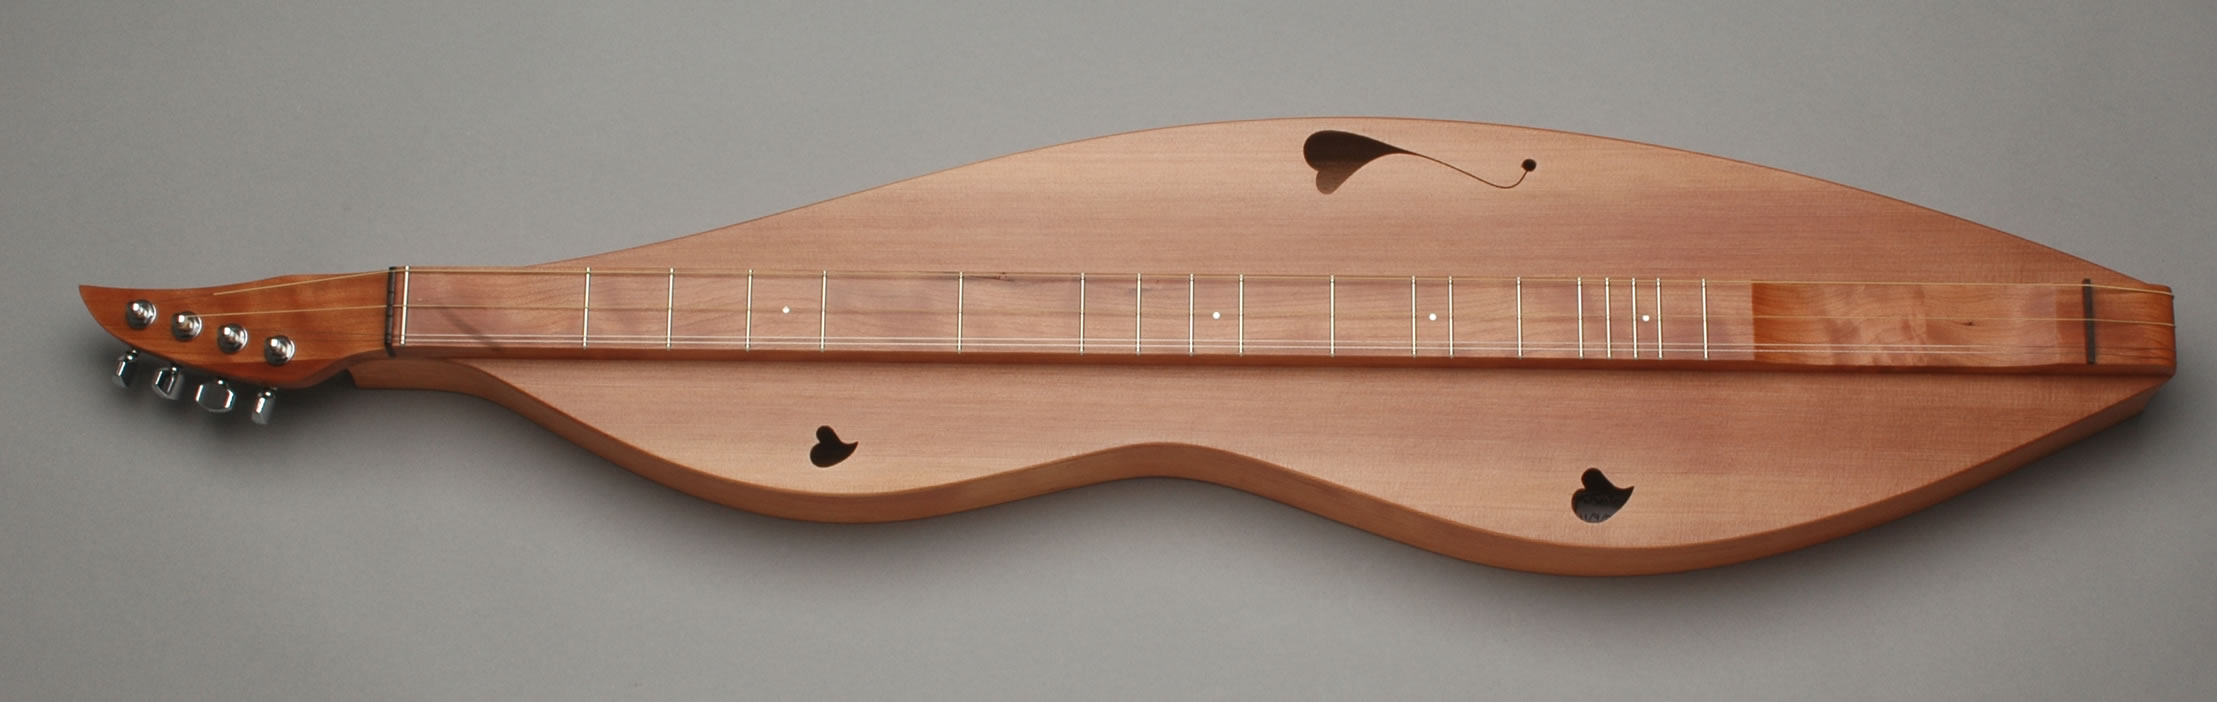 Click here for larger view of Ron Ewing's Baritone Dulcimer